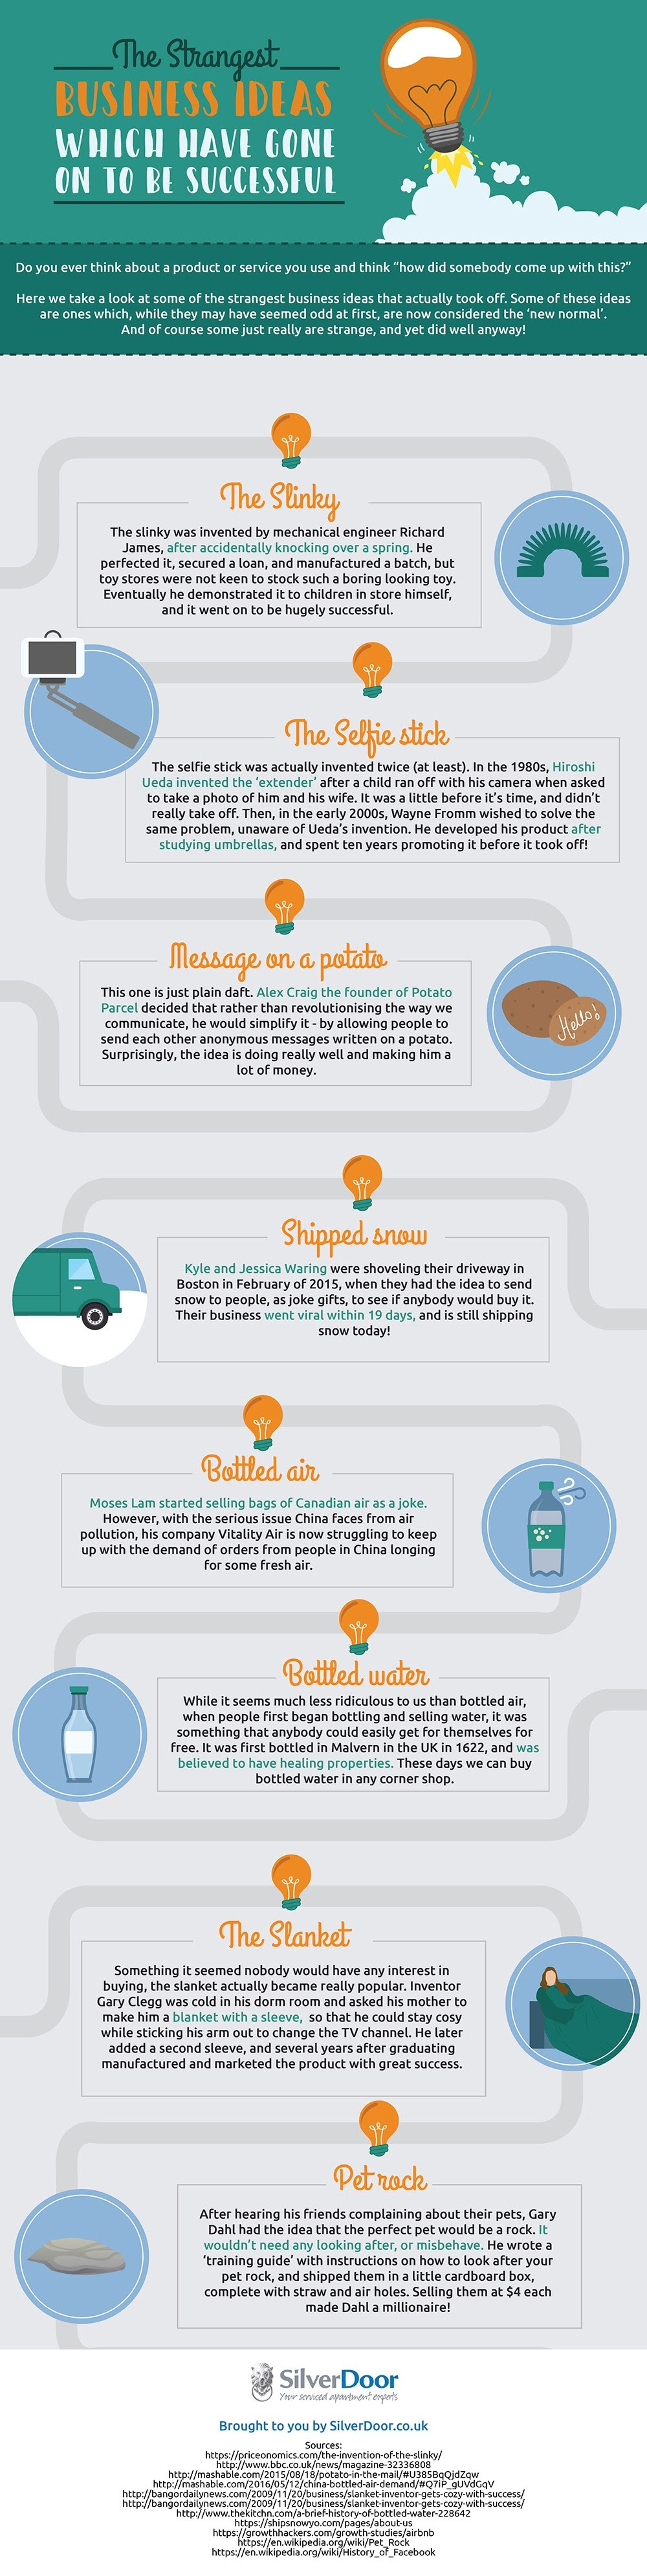 The Strangest Business Ideas Which Have Gone On To Be Successful - #Infographic